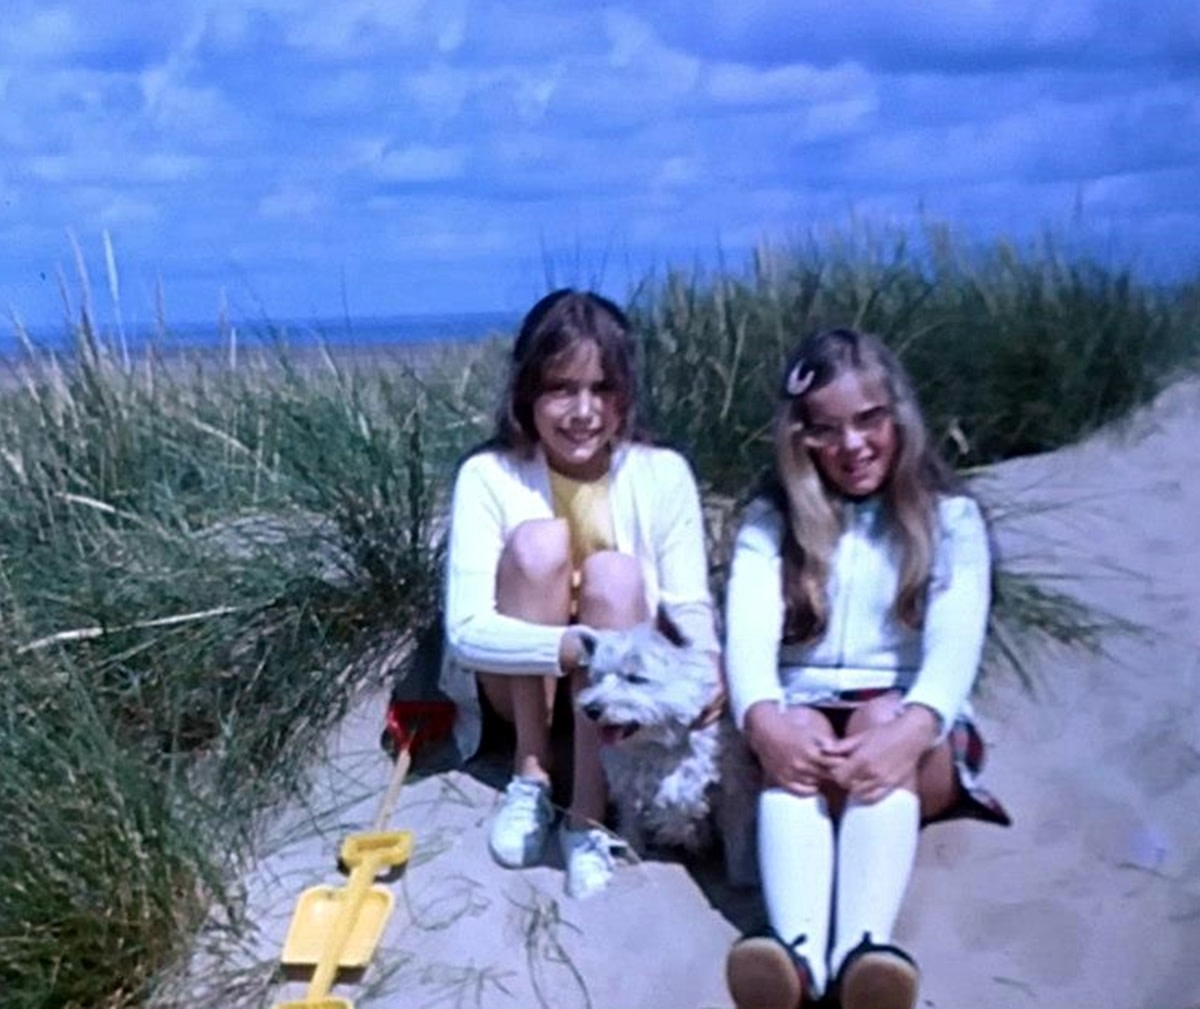 Me as a child (on the left) with my cousin and my much-loved dog Mitzie, a West Highland Terrier and my companion since I was one year old. Wherever I went, Mitzie went too, including on days out to the beach, as in this photo.